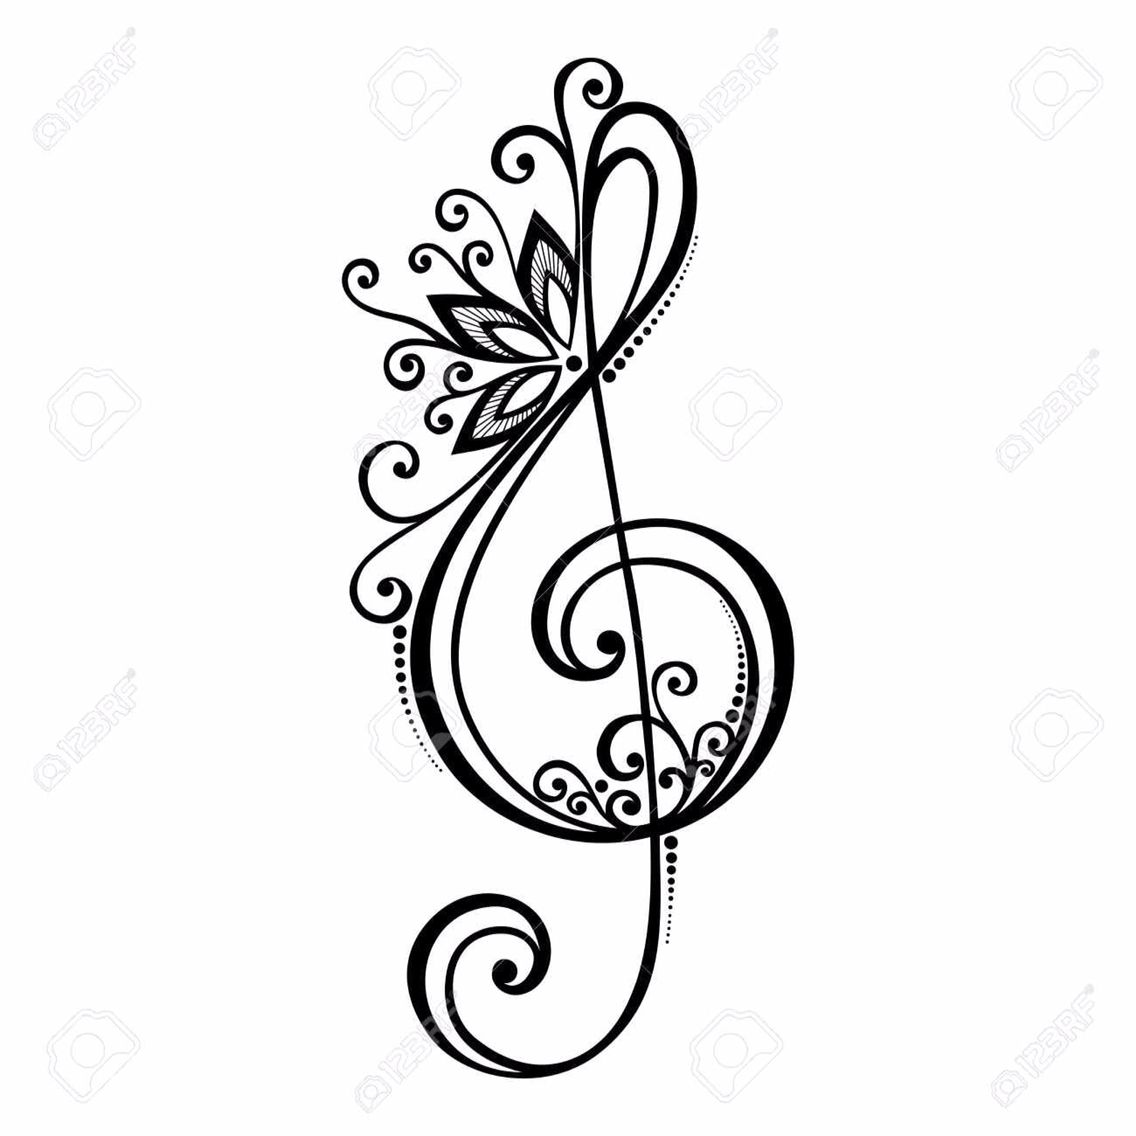 Treble clef clipart small. Musica pinterest and tattoo